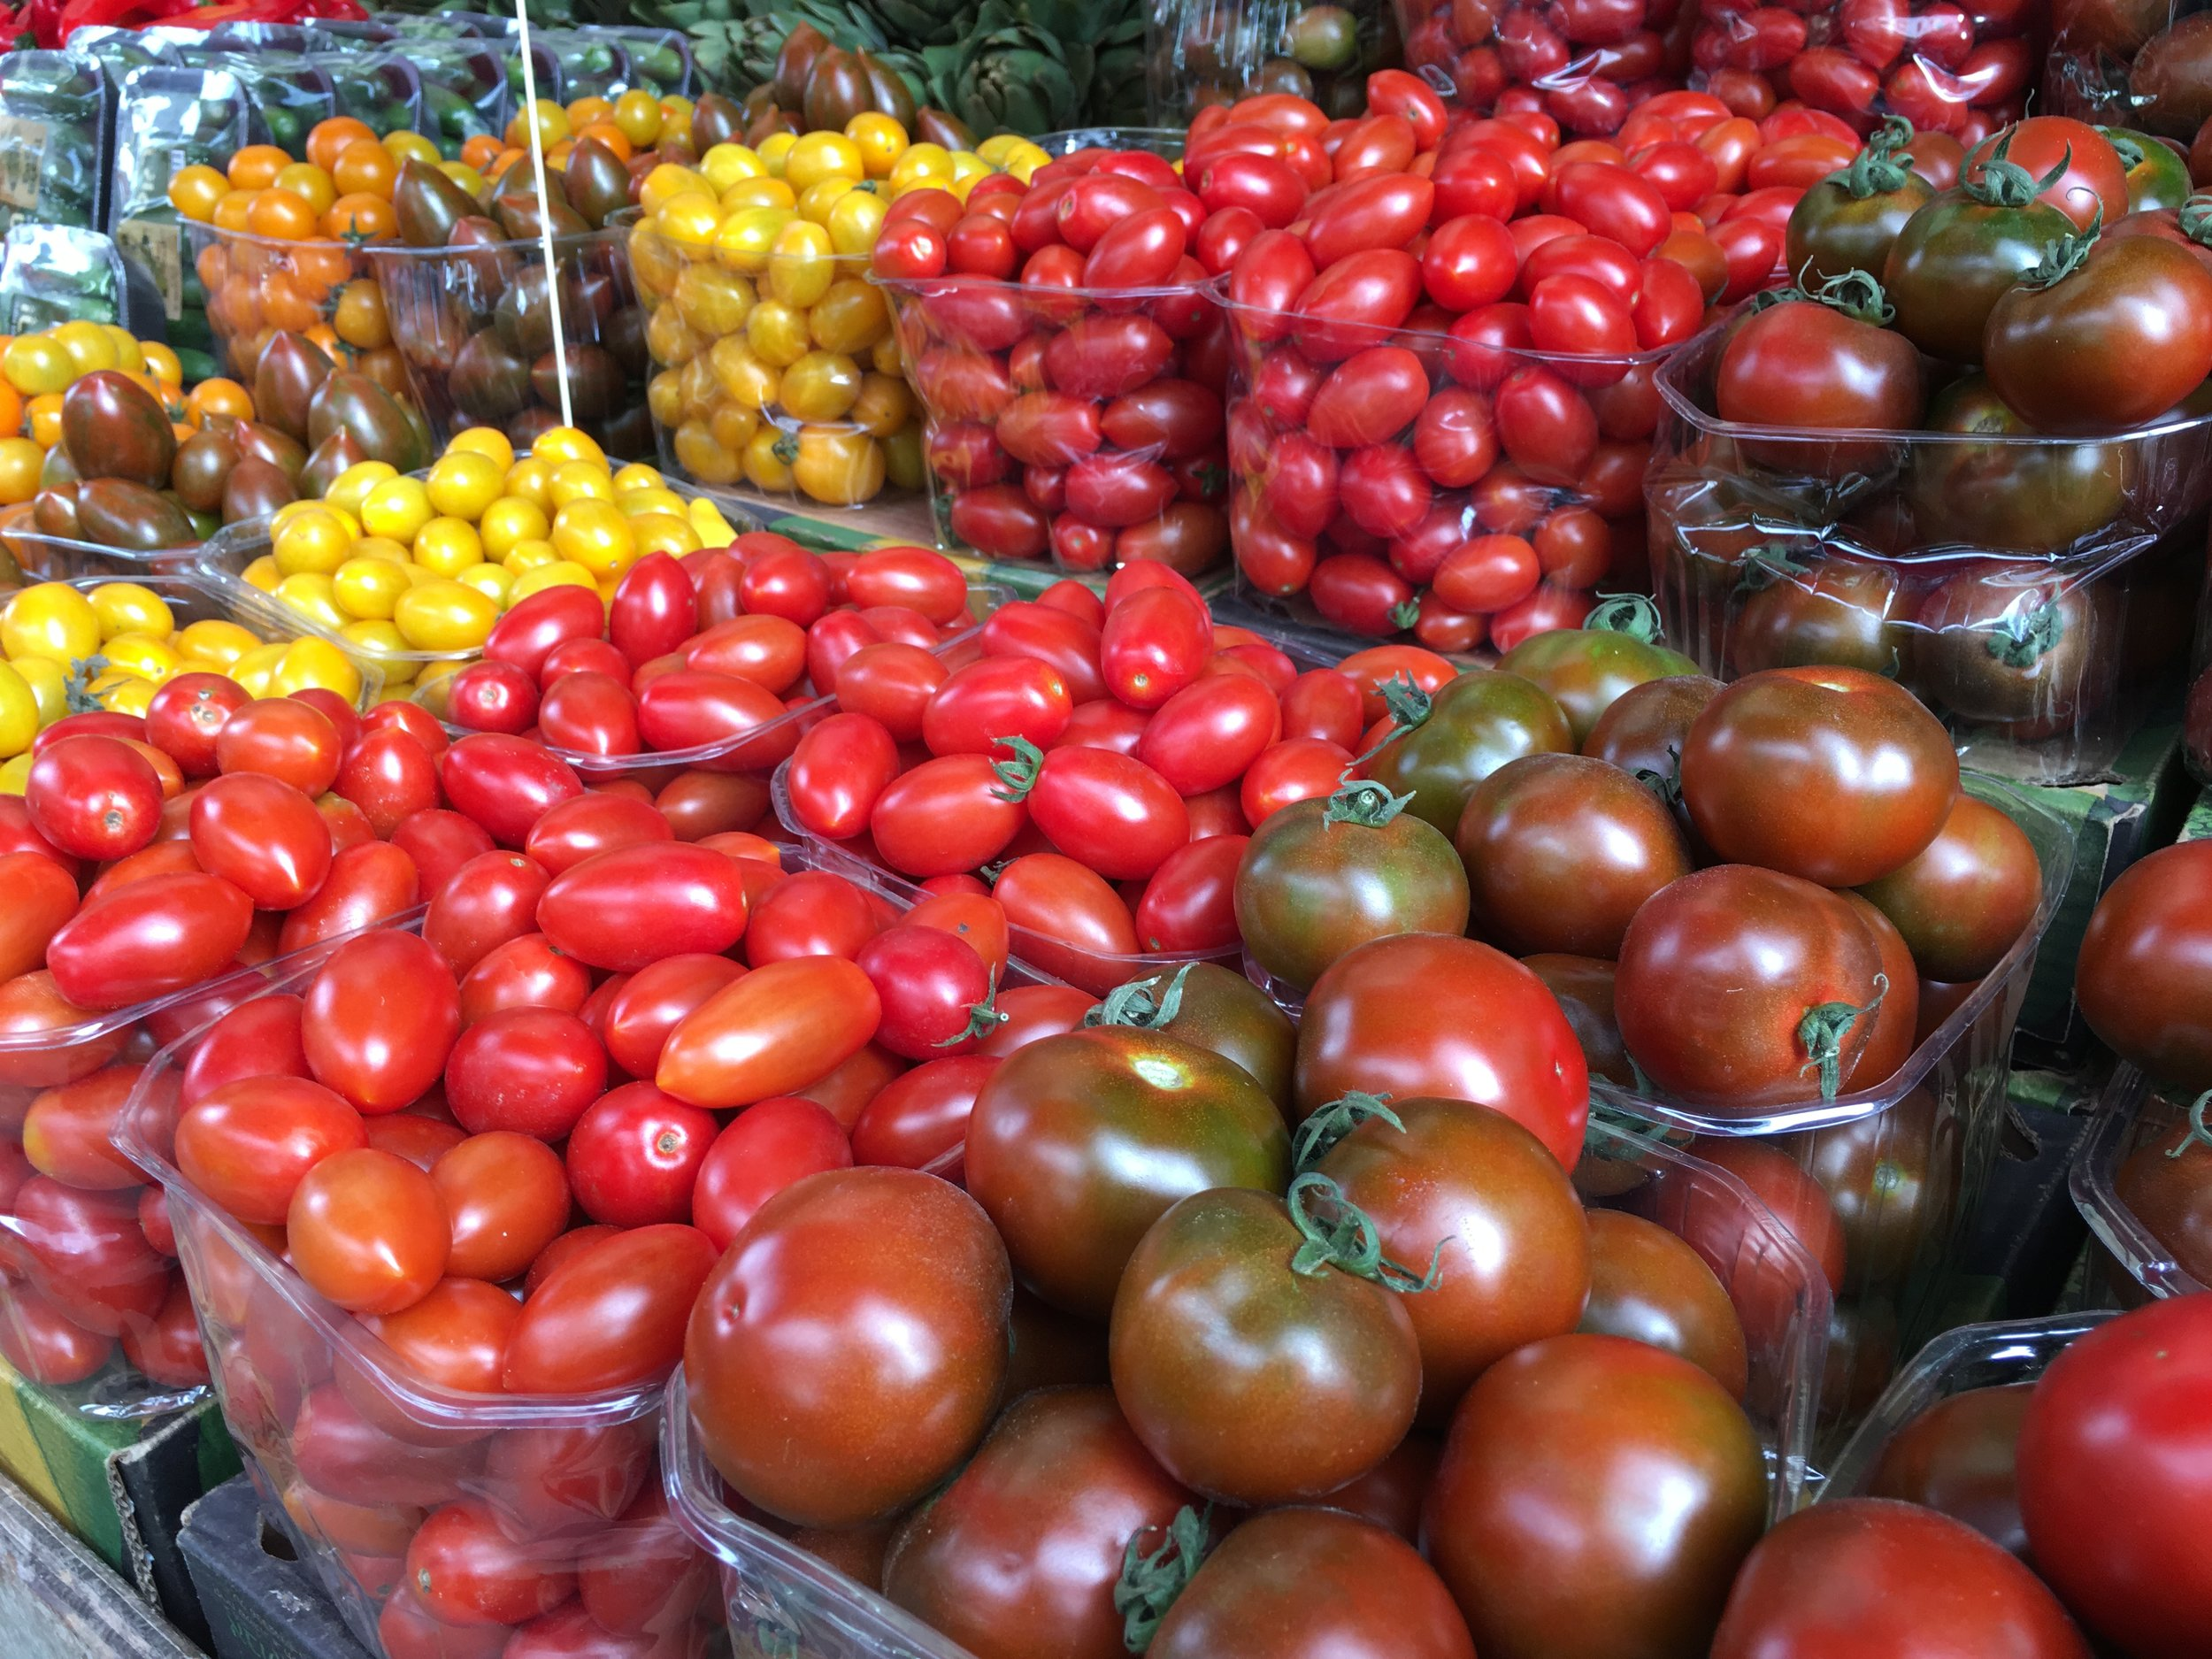 Glistening tomatoes at the market